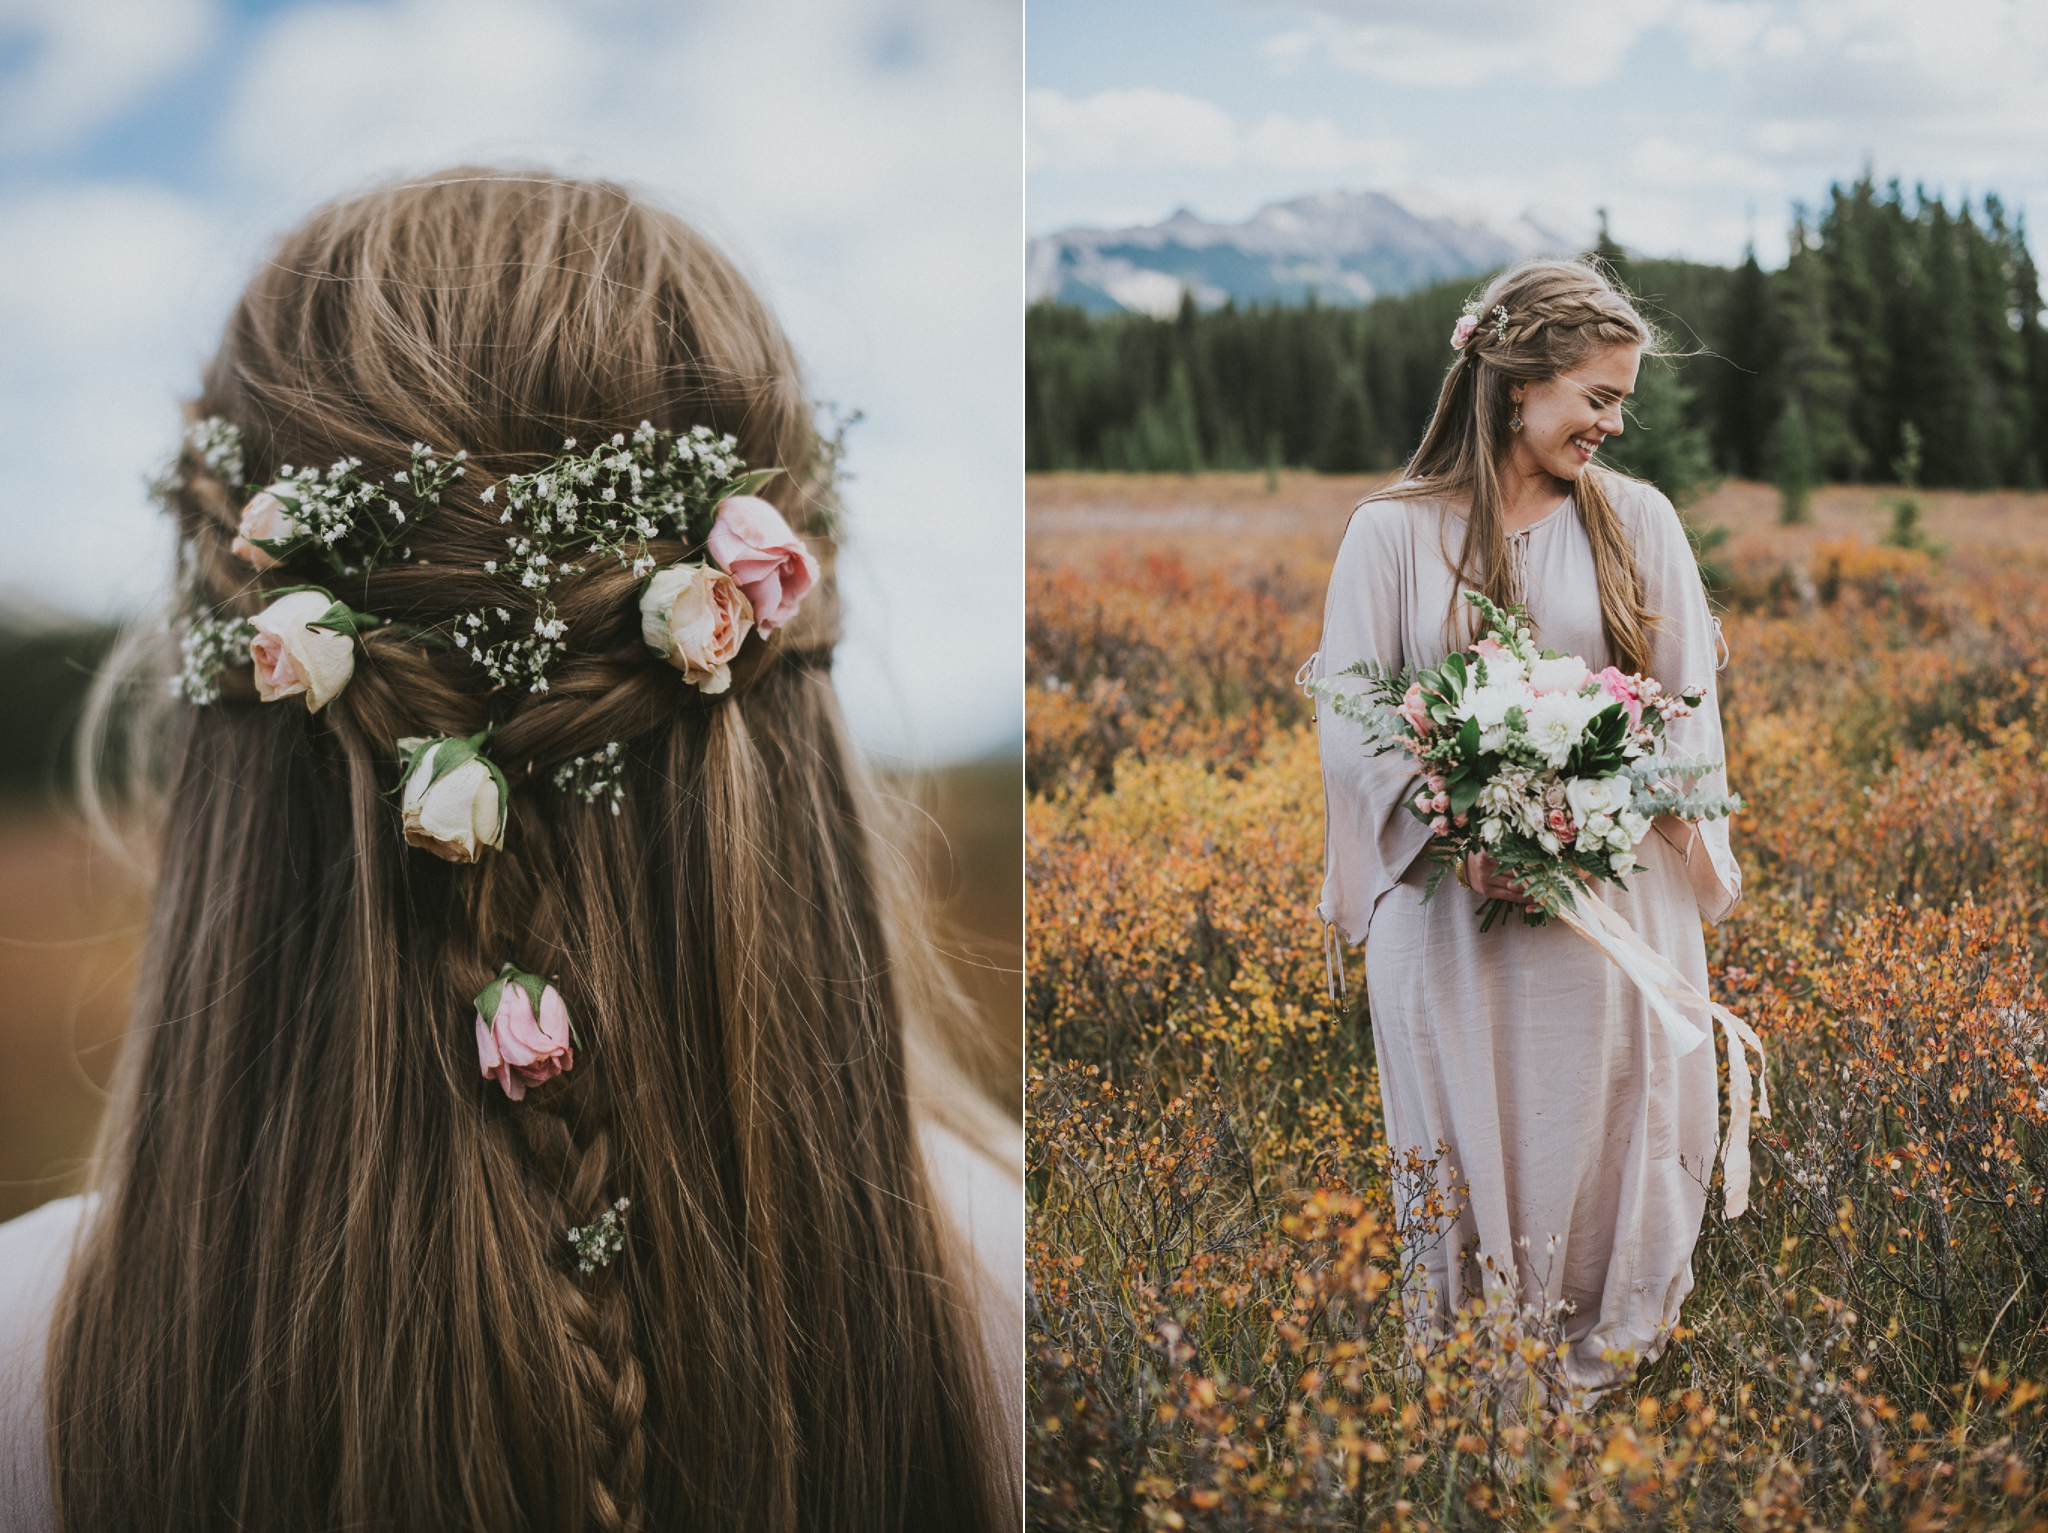 kananaskis bride hair flower details portrait